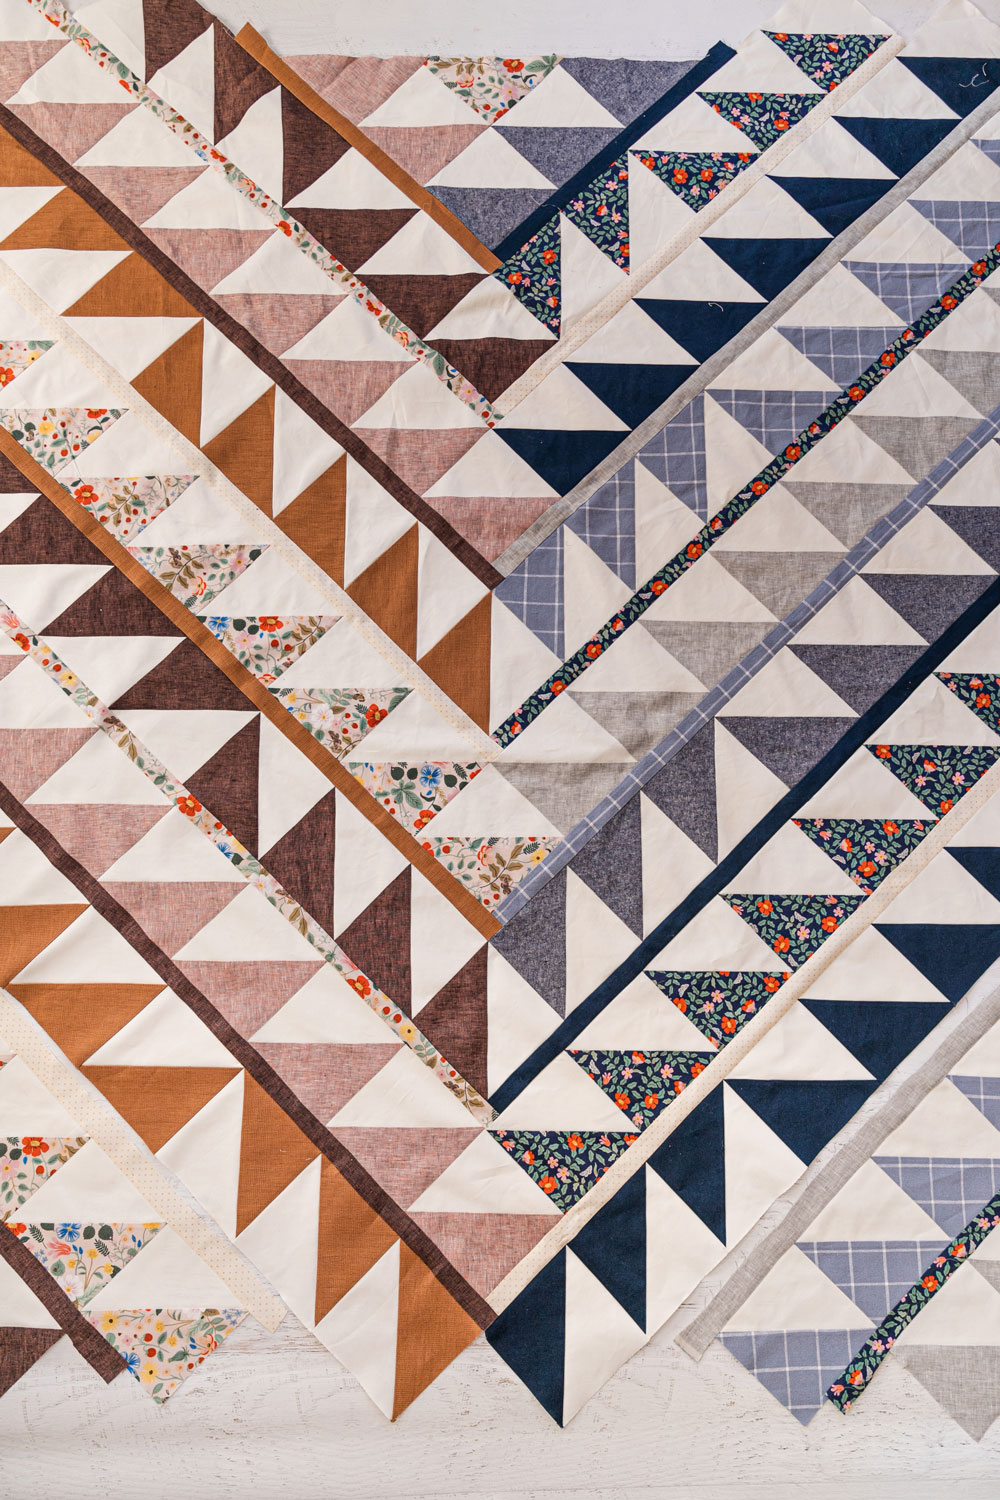 The Gather quilt sew along is an online quilting community experience! We will make this modern quilt pattern together – one week at a time. suzyquilts.com #quiltalong #modernquiltpattern